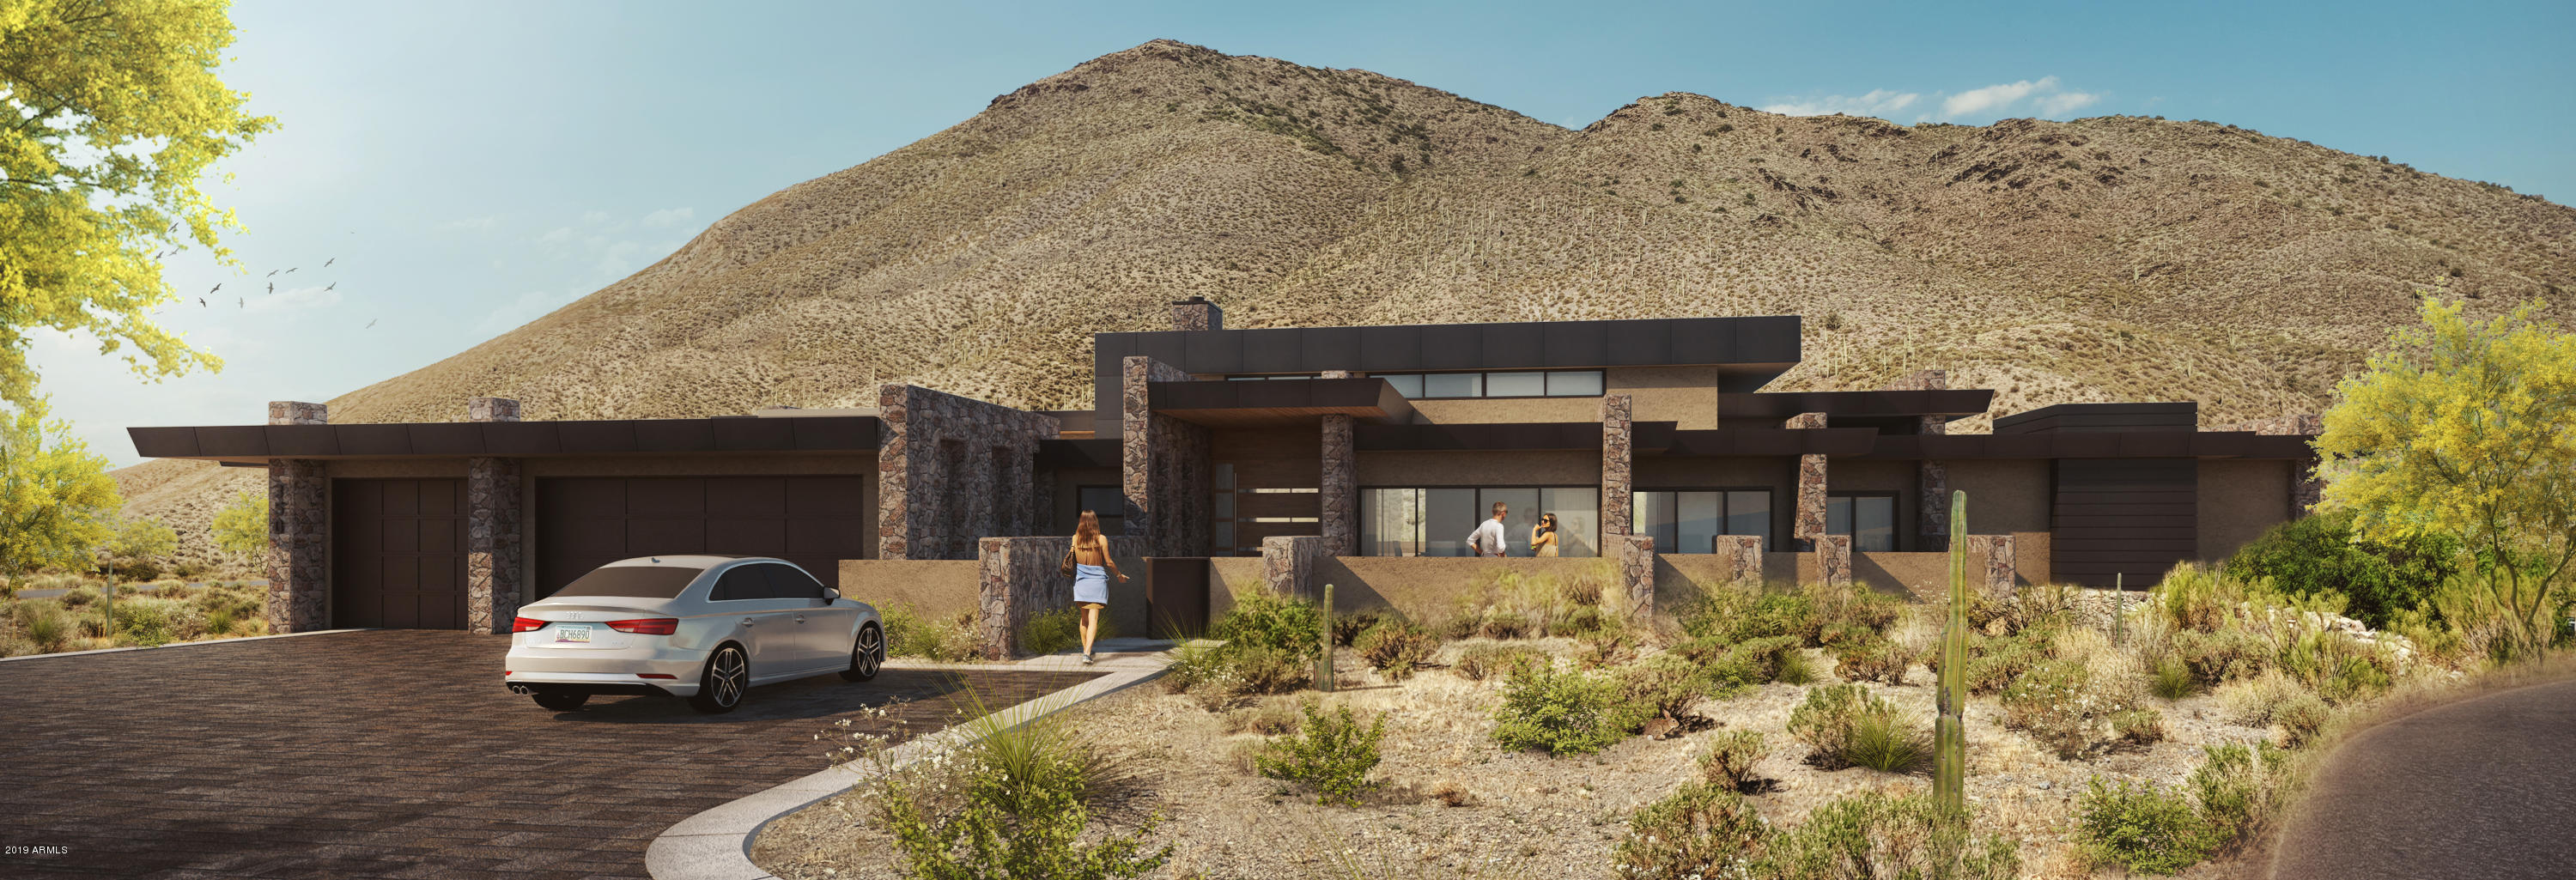 9505 E HIGH CANYON Drive, Desert Mountain, Arizona